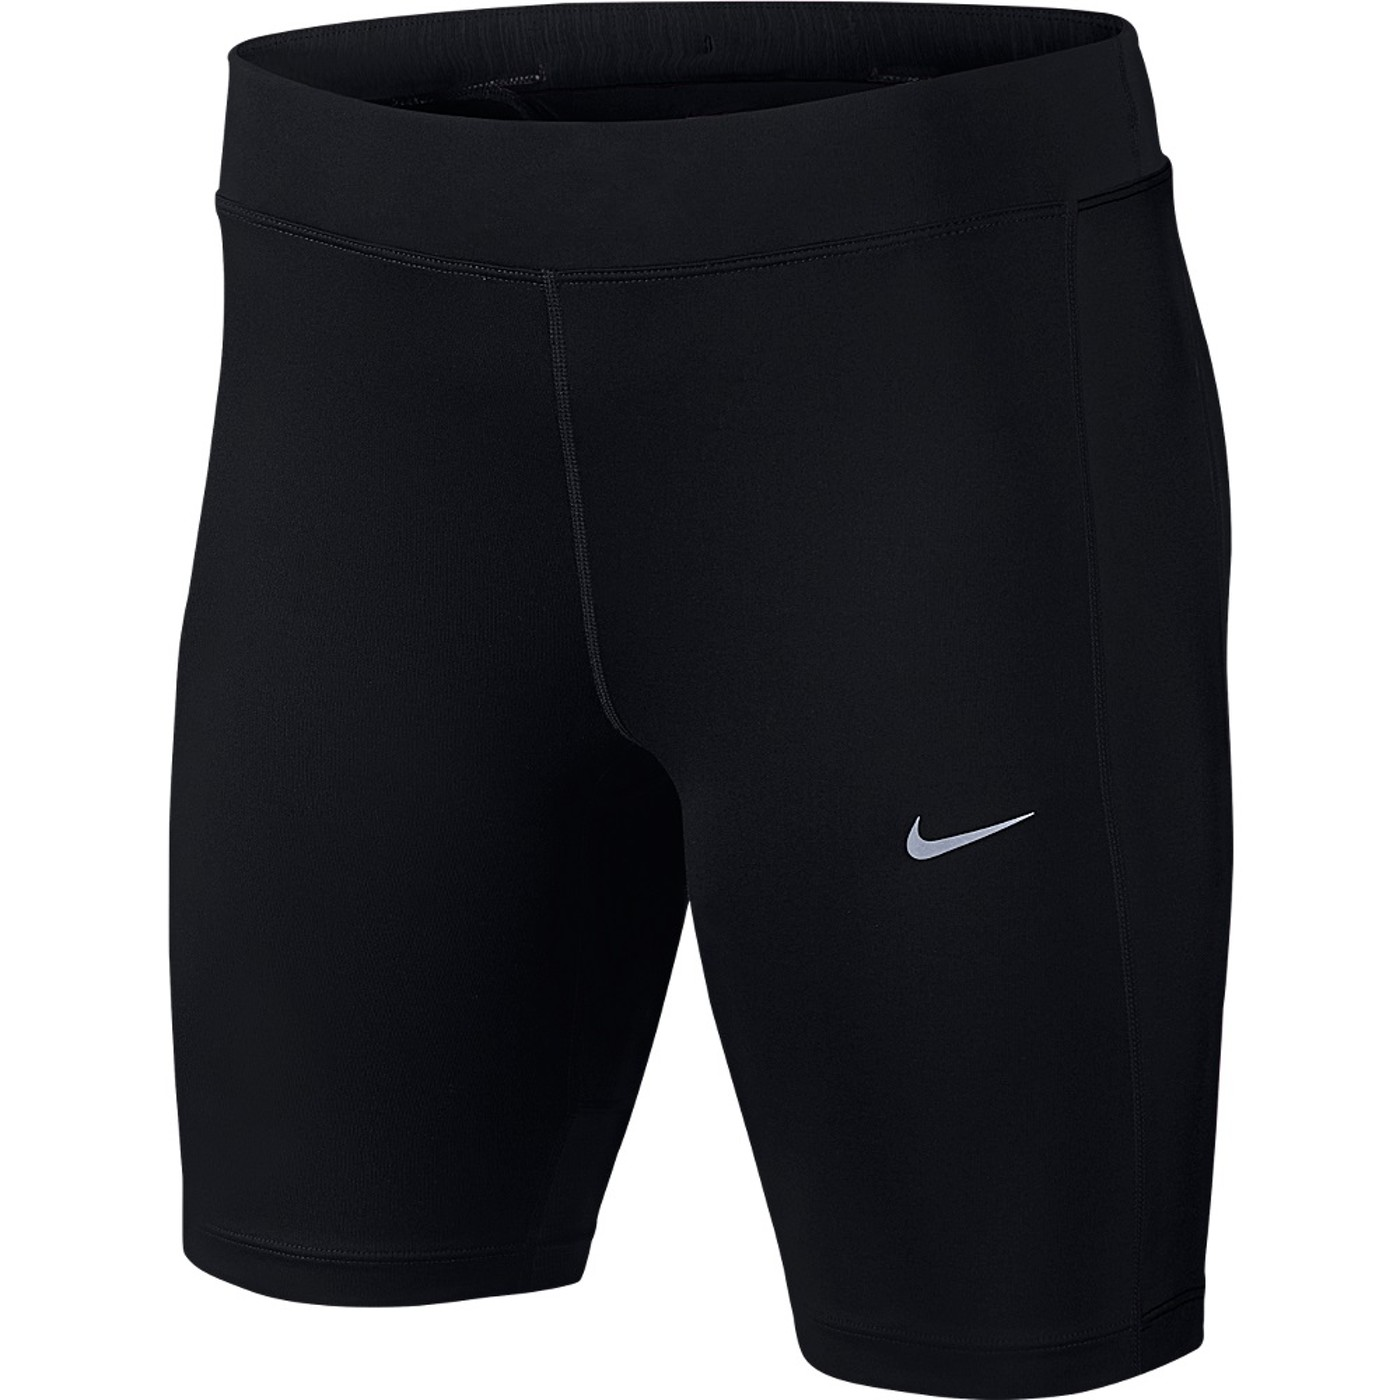 NIKE Short ESSENTIAL - Damen